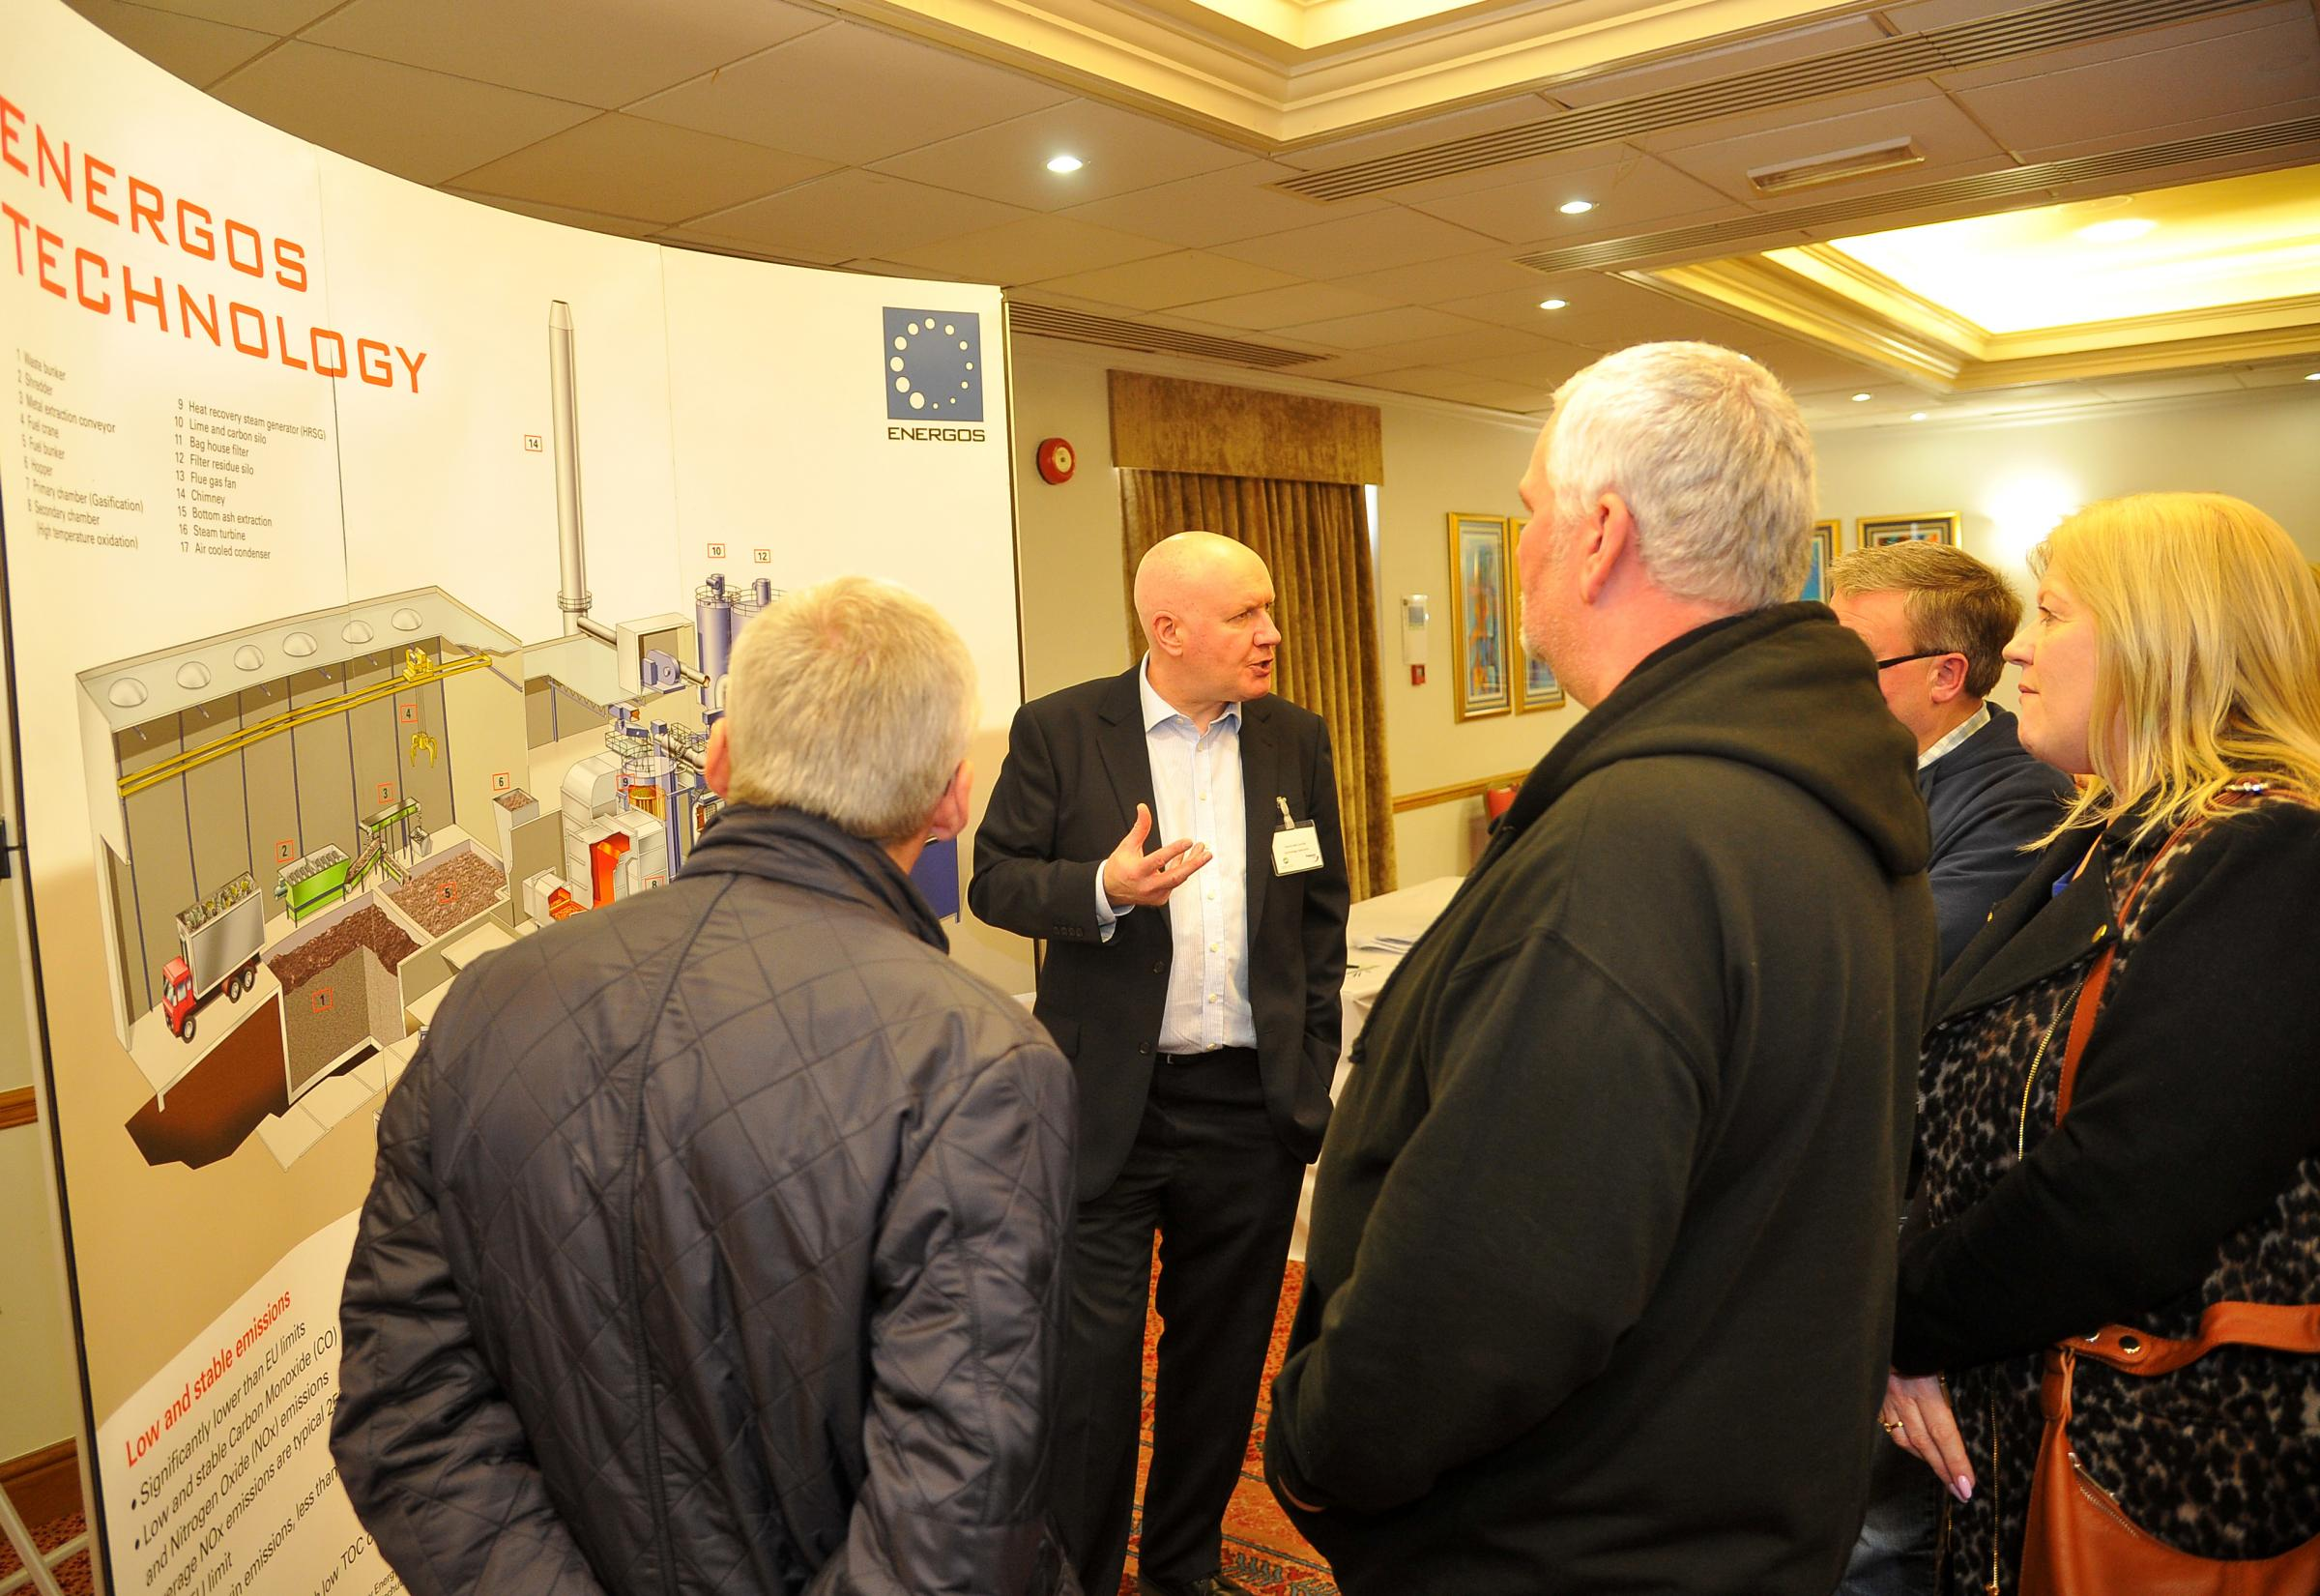 n Residents who attended the public engagement session about the new energy centre near to Honda